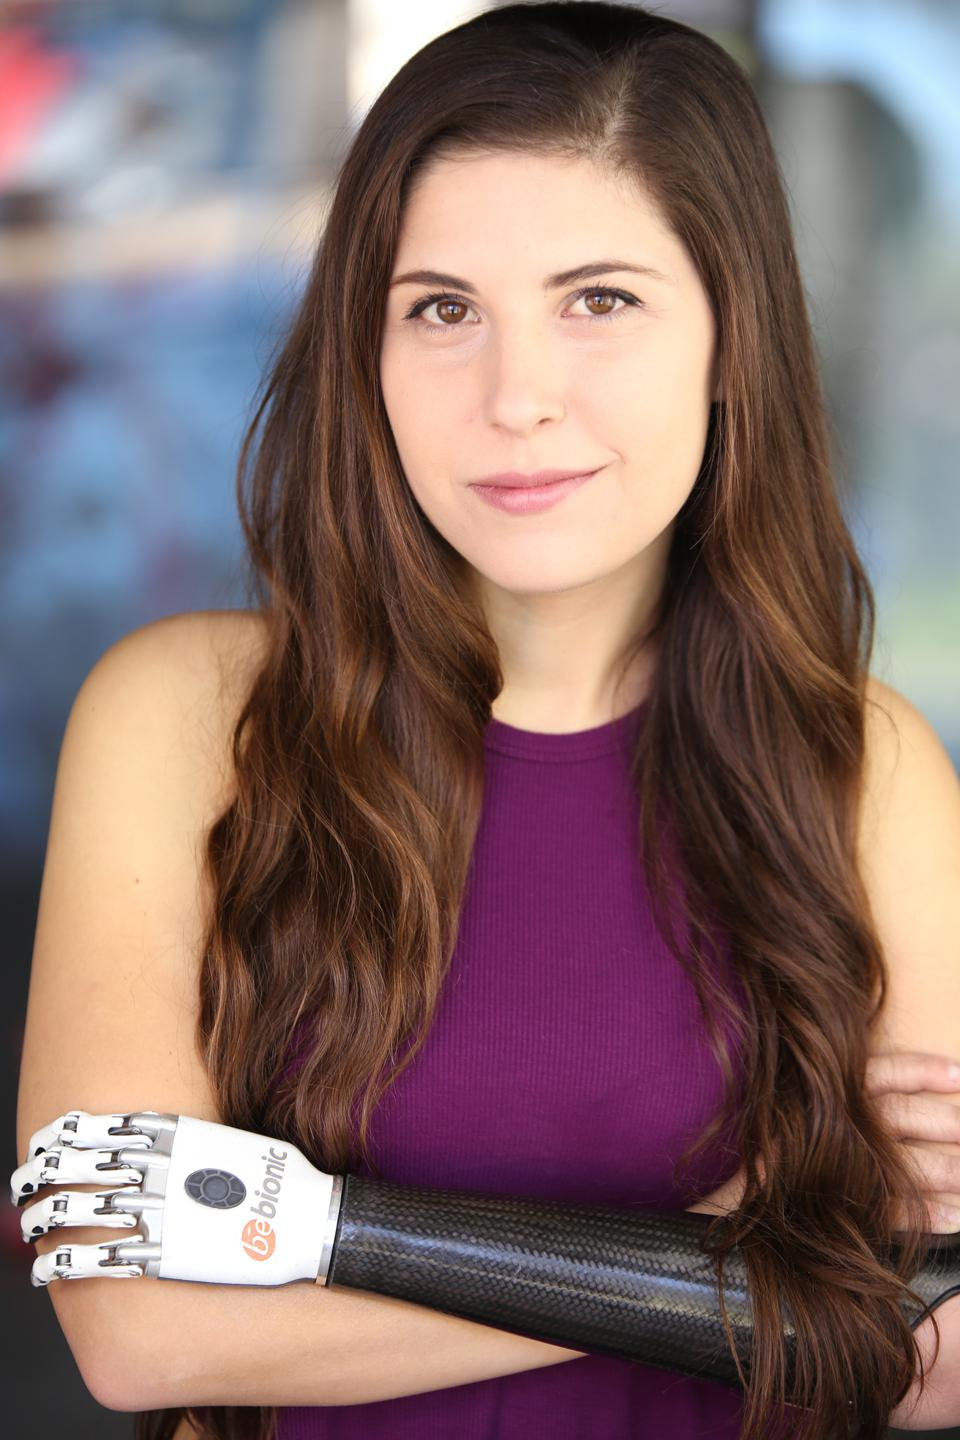 A woman with long brown hair and a dark purple shirt poses wearing her prosthetic arm.